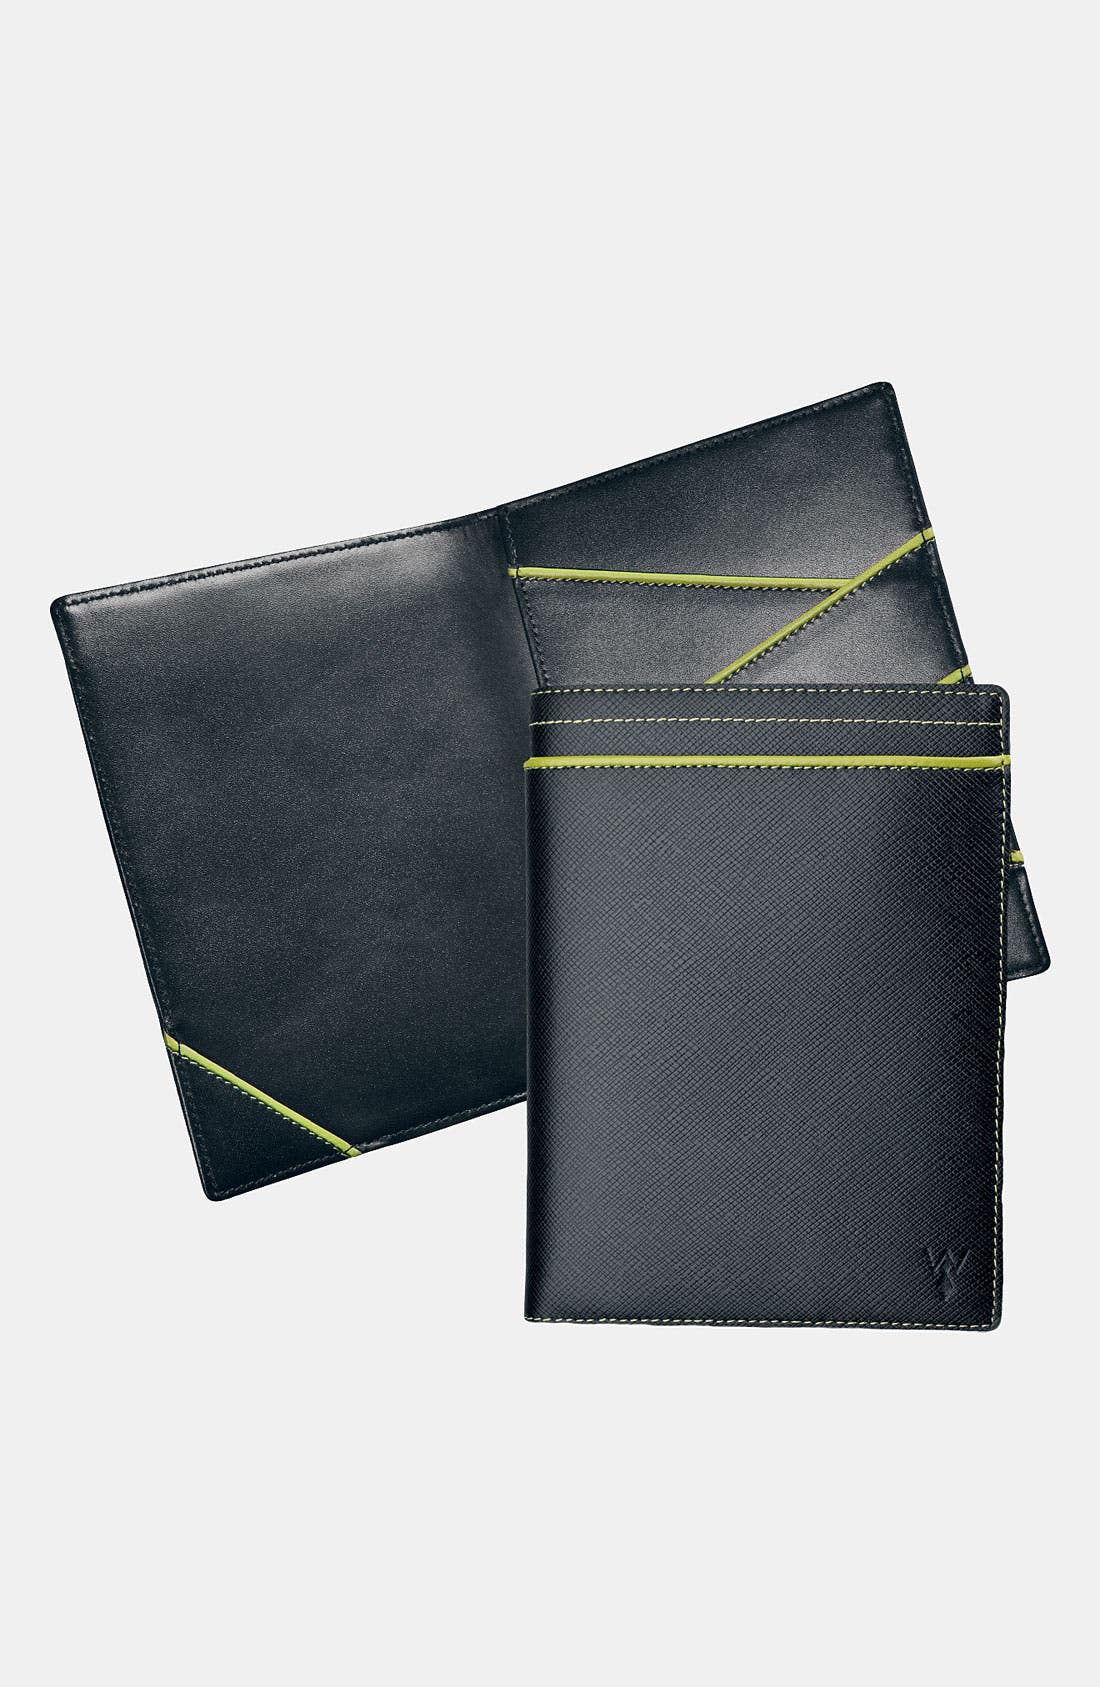 Alternate Image 1 Selected - Würkin Stiffs RFID Blocker Passport Wallet